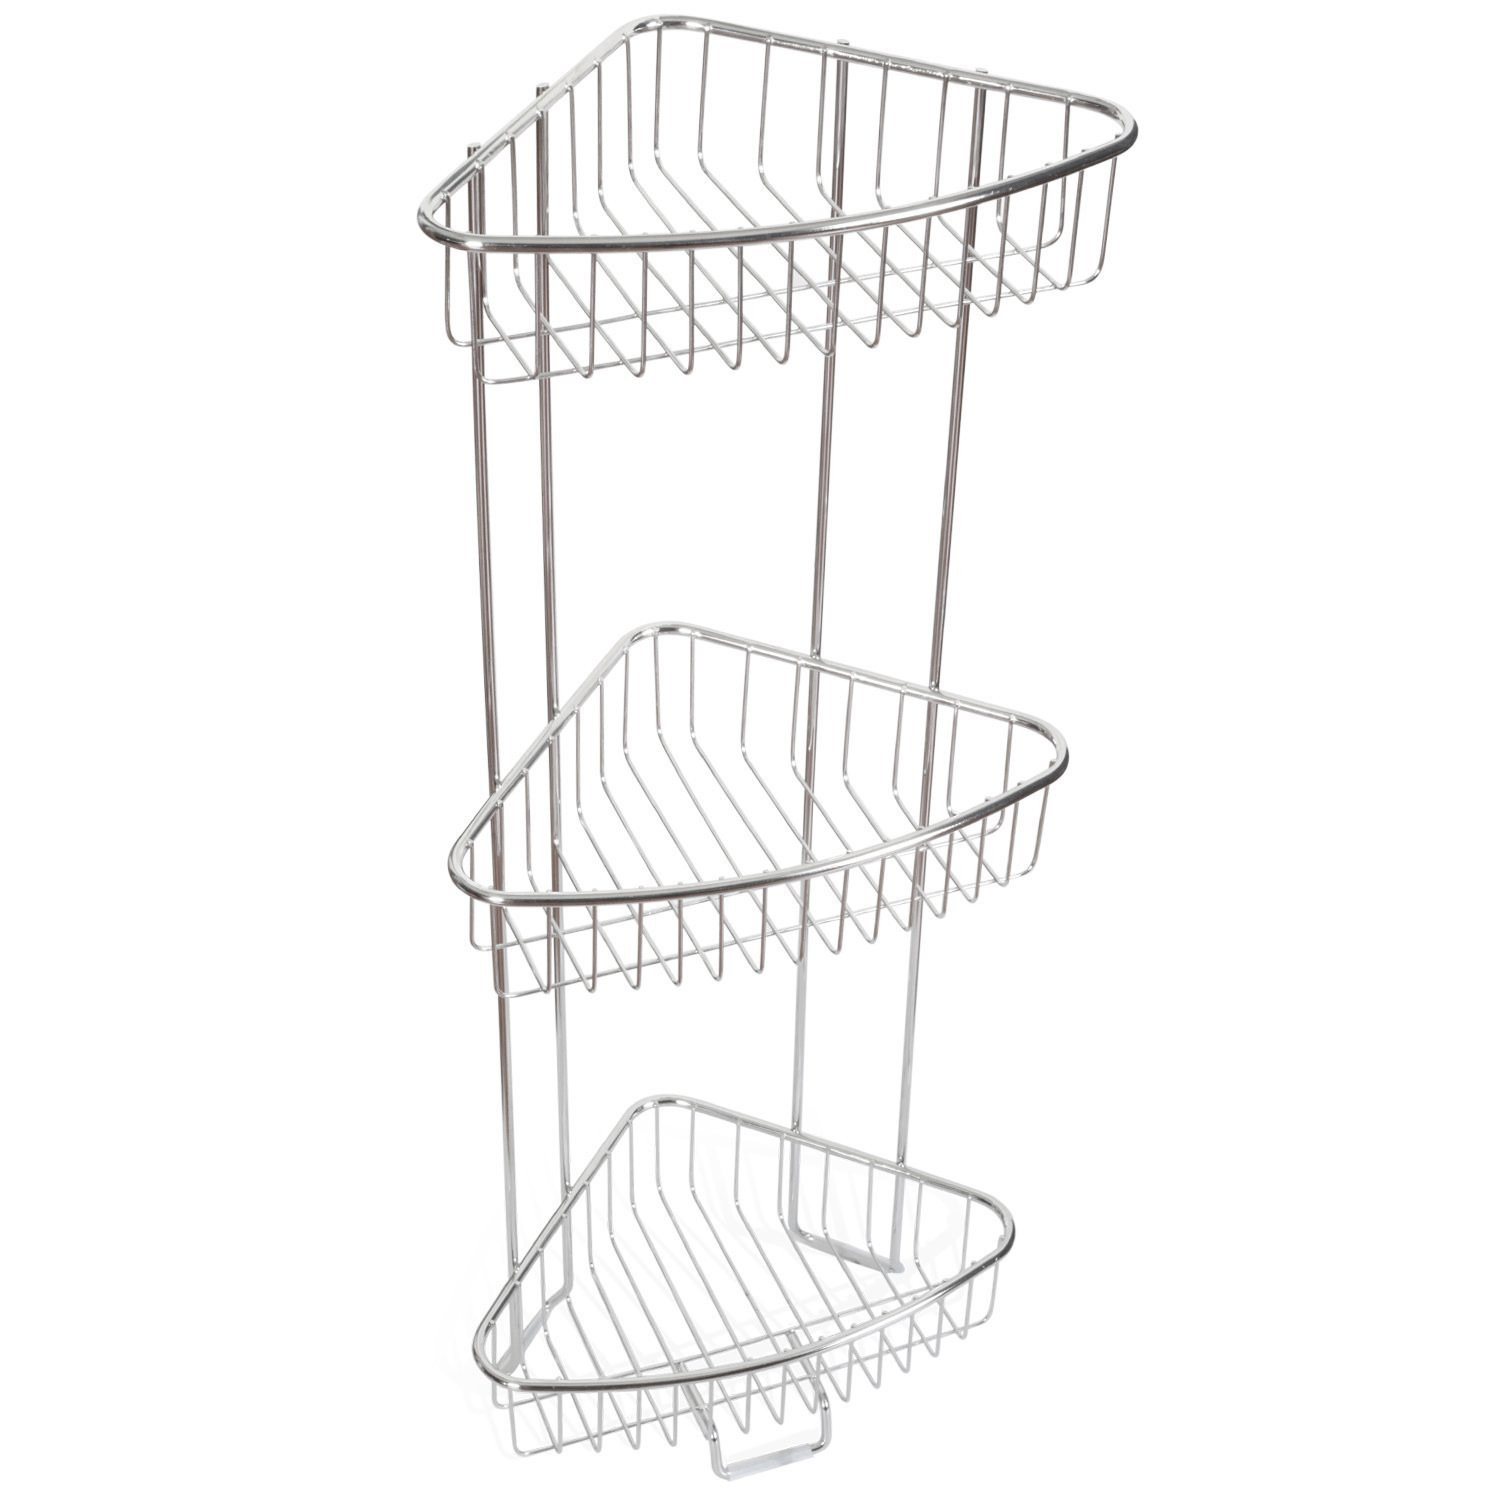 ToiletTree Products Shower Floor Caddy, Stainless Steel, Rust Free Guarantee, 3 Tier, 26 Inches Tall